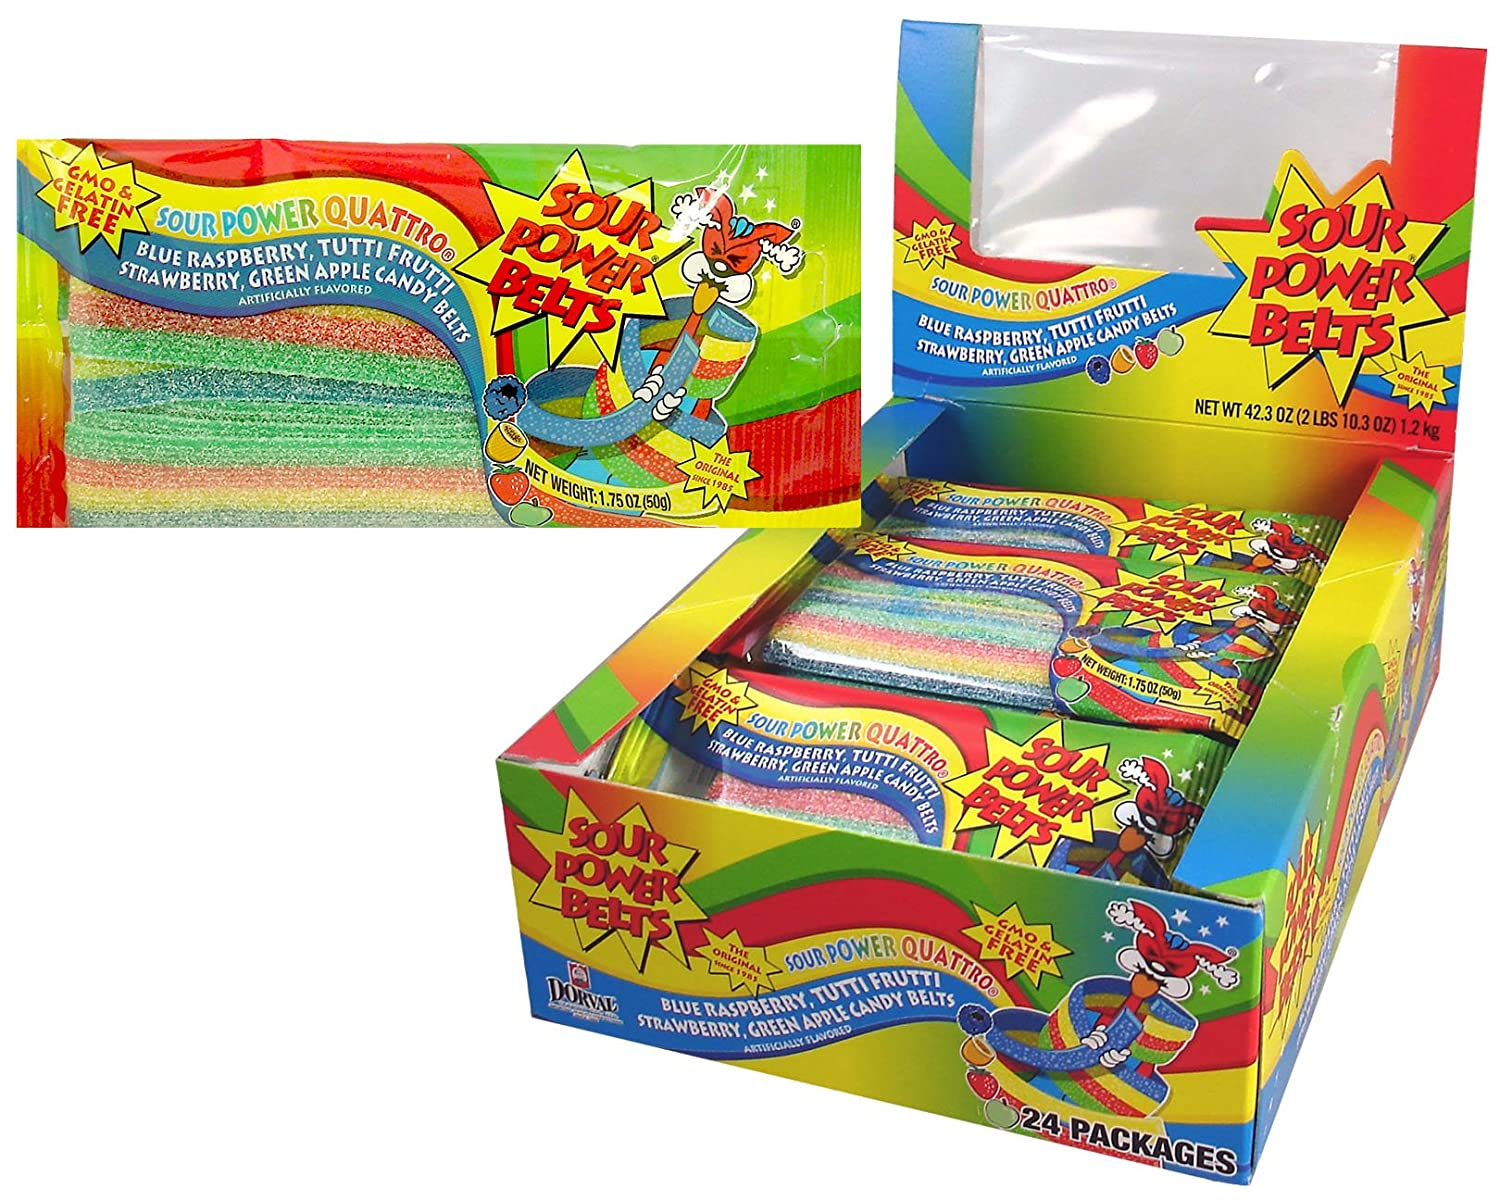 Sour Power Belt Candy Packages, Quattro, 42.3 Ounce